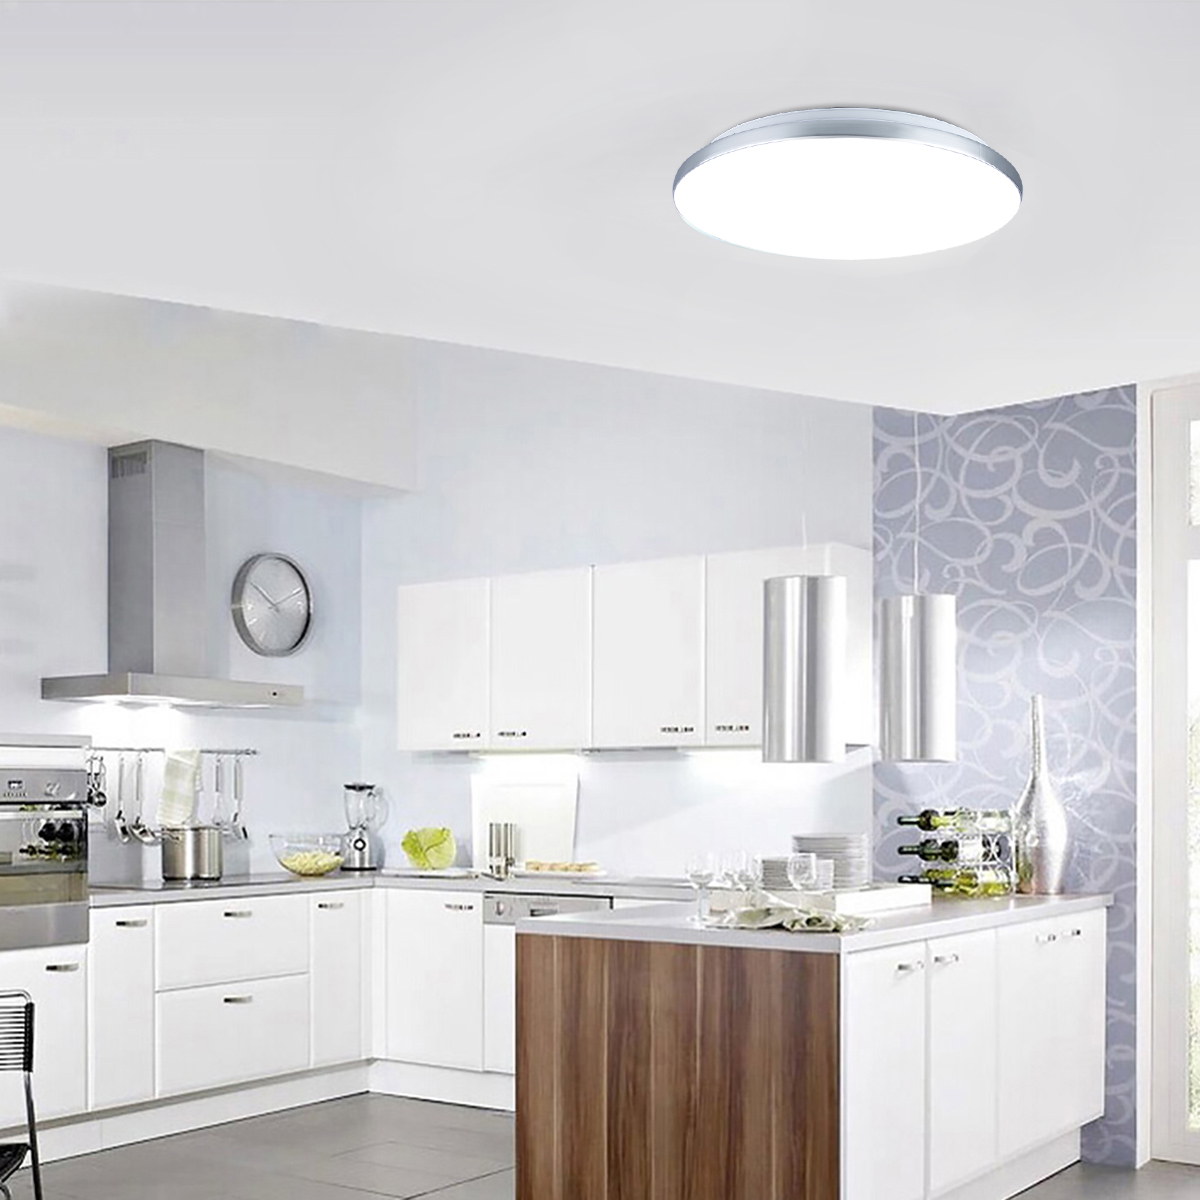 led kitchen lighting 24w led ceiling light flush mount home kitchen 3704